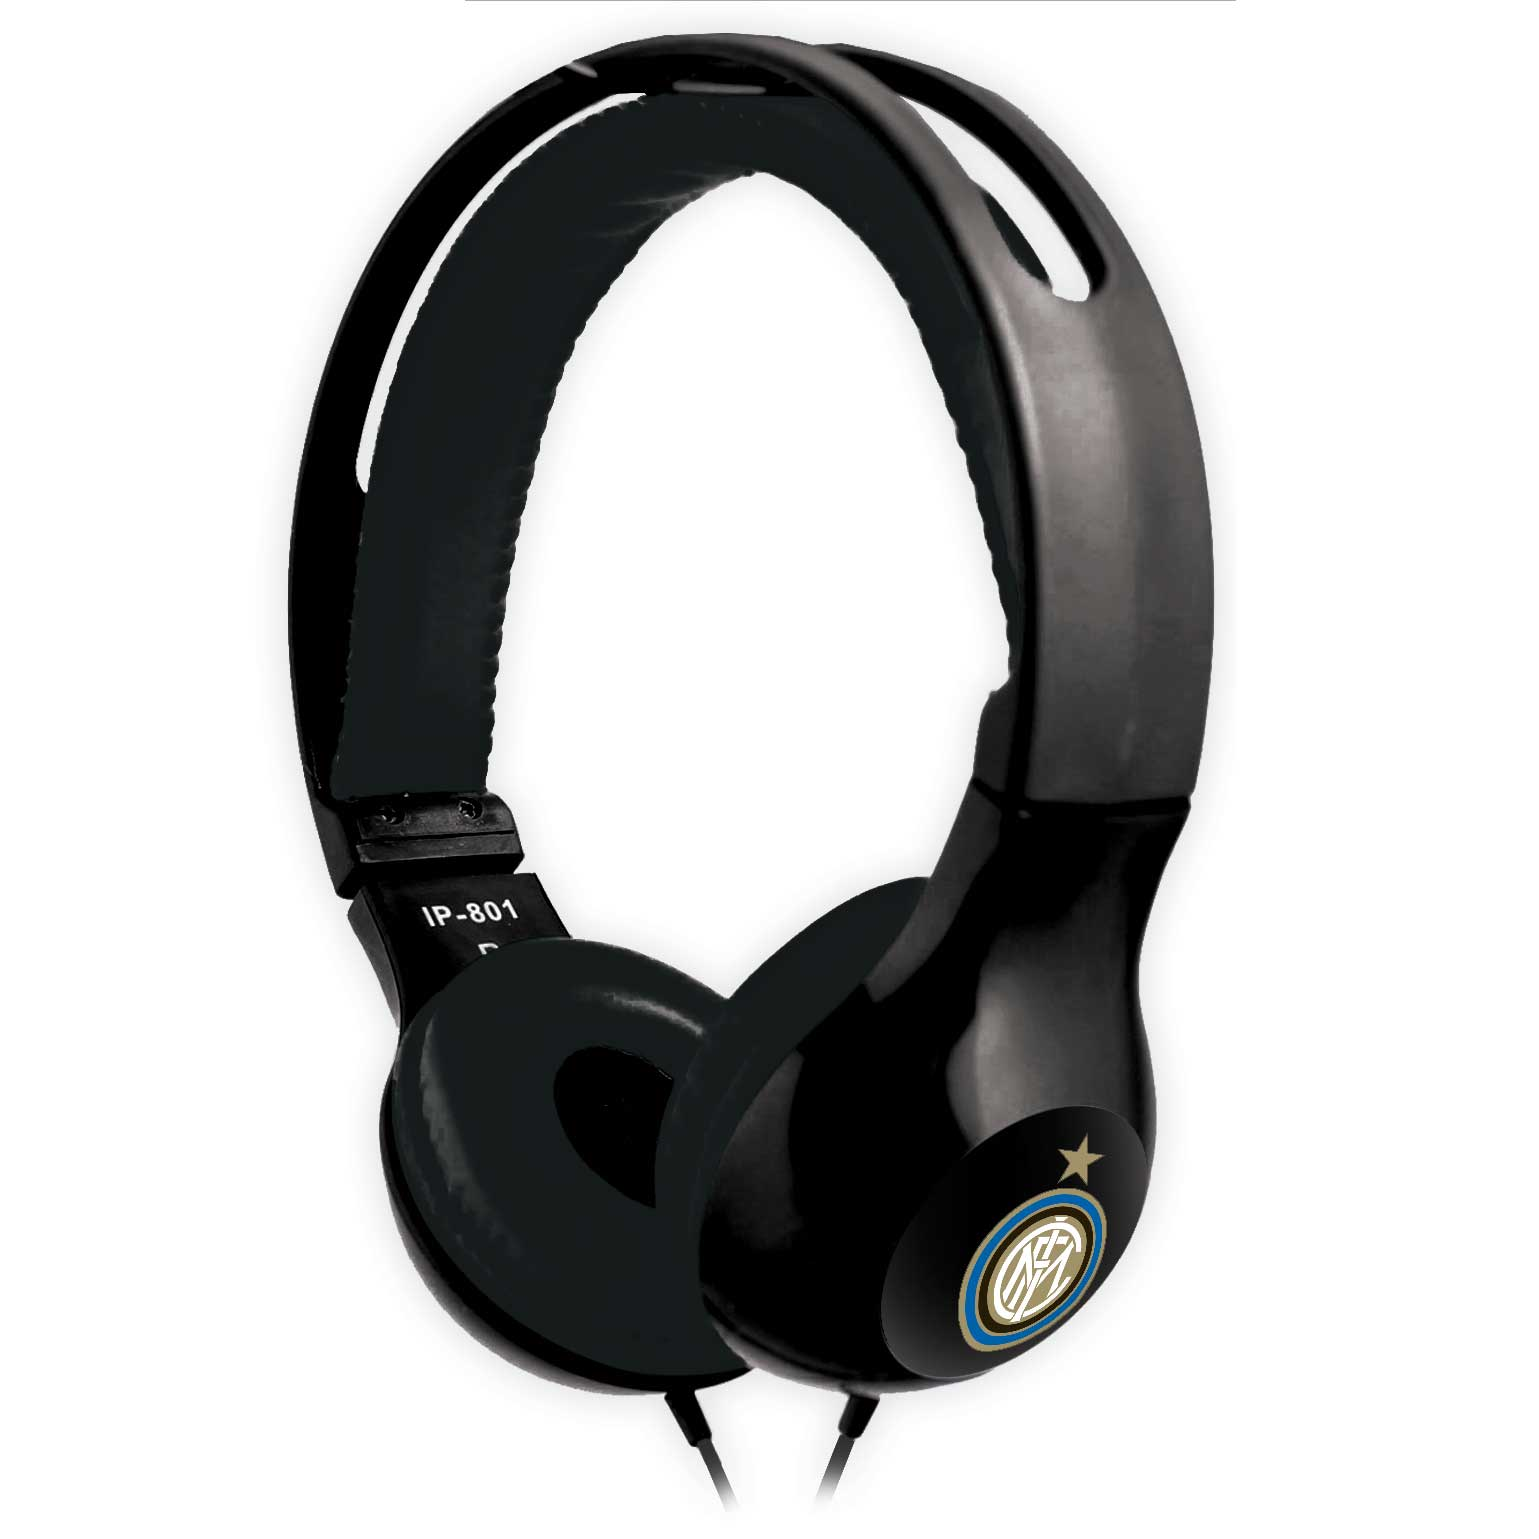 FC Inter Milan Headphone with mic